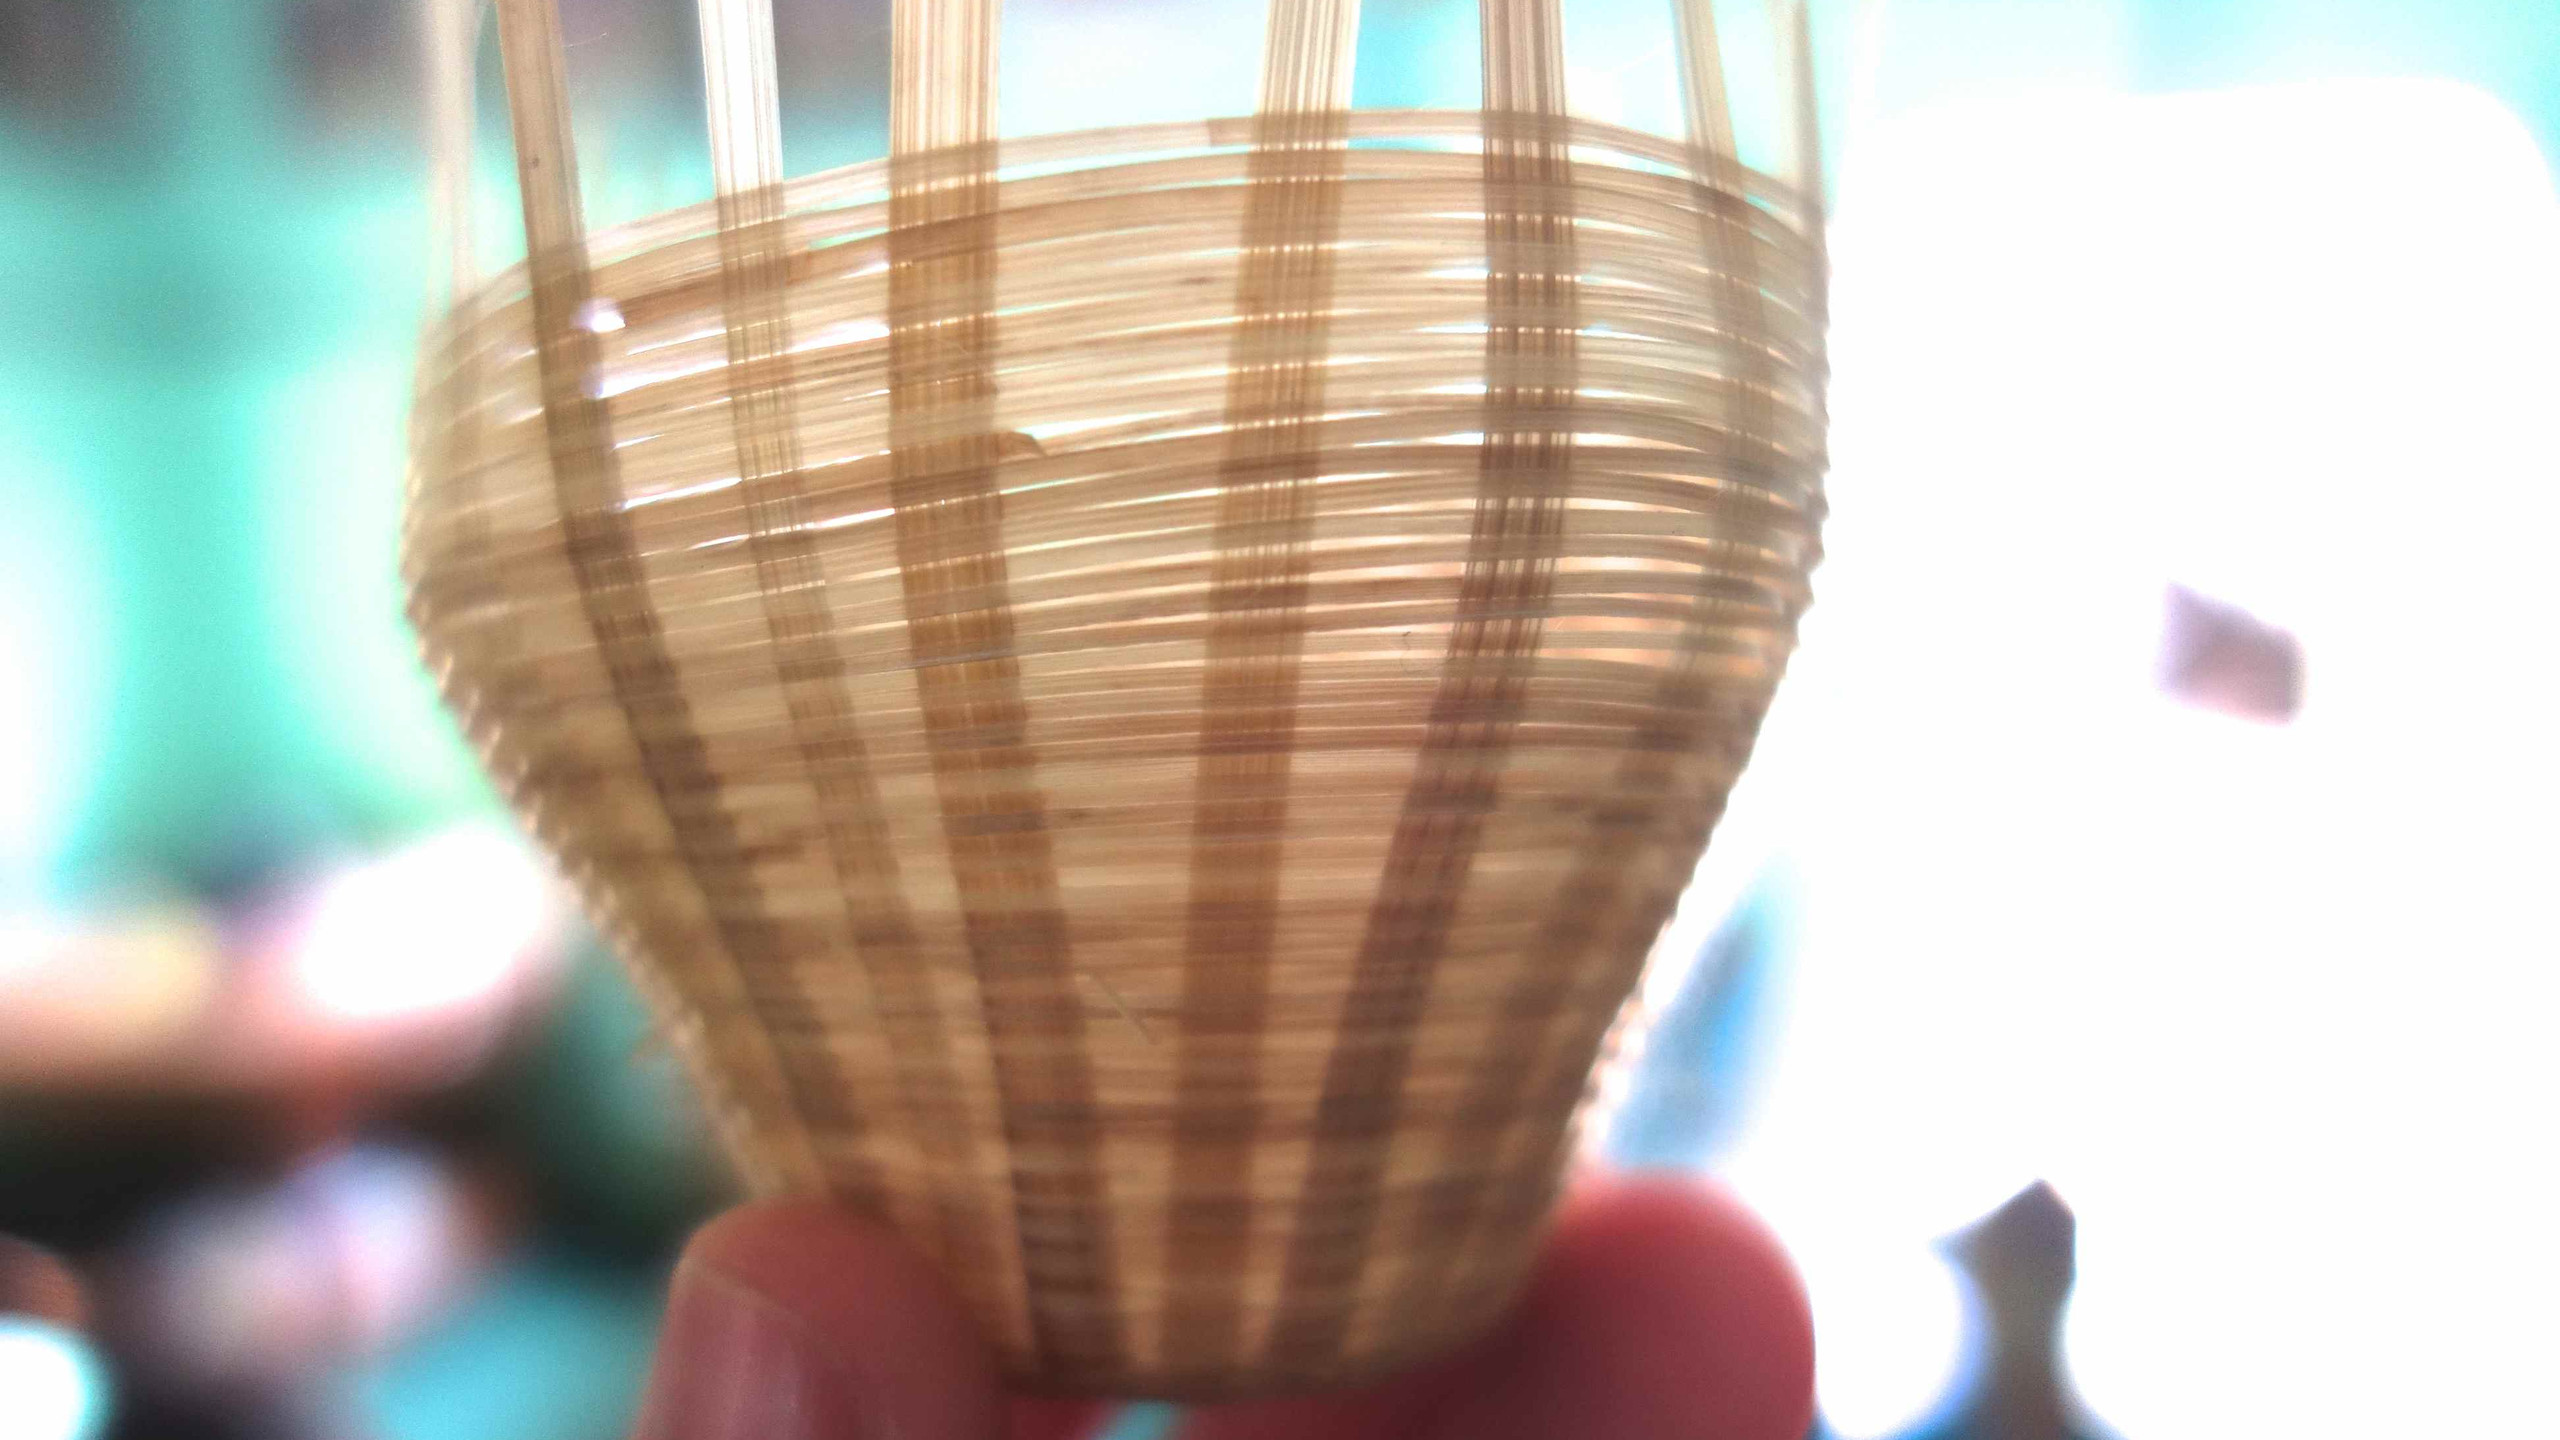 Bamboo Weaved Core Structure